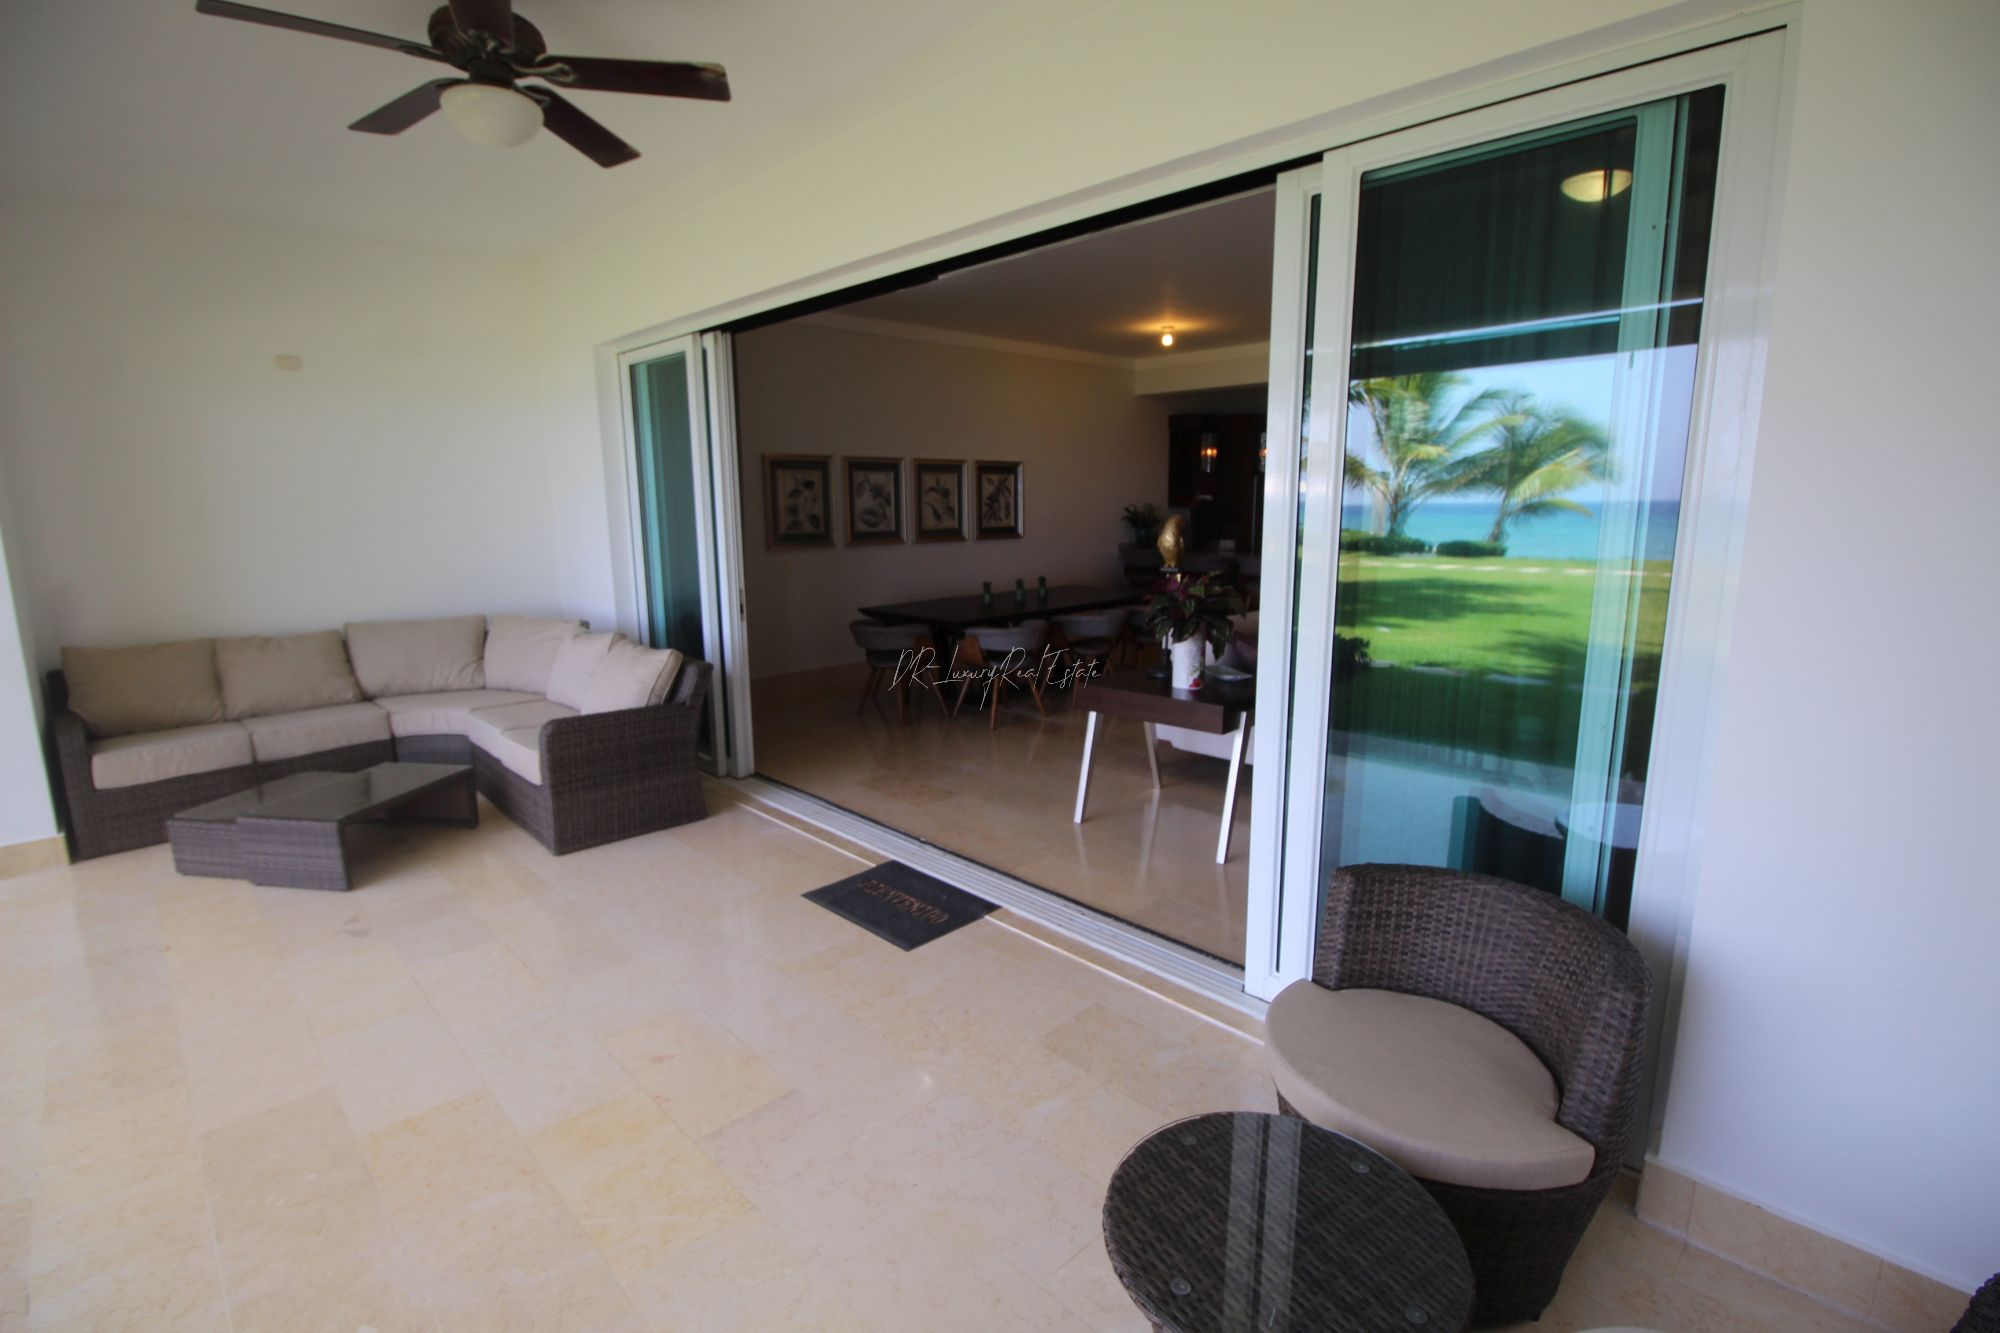 #15 Beautiful modern beachfront condo with 3 bedrooms